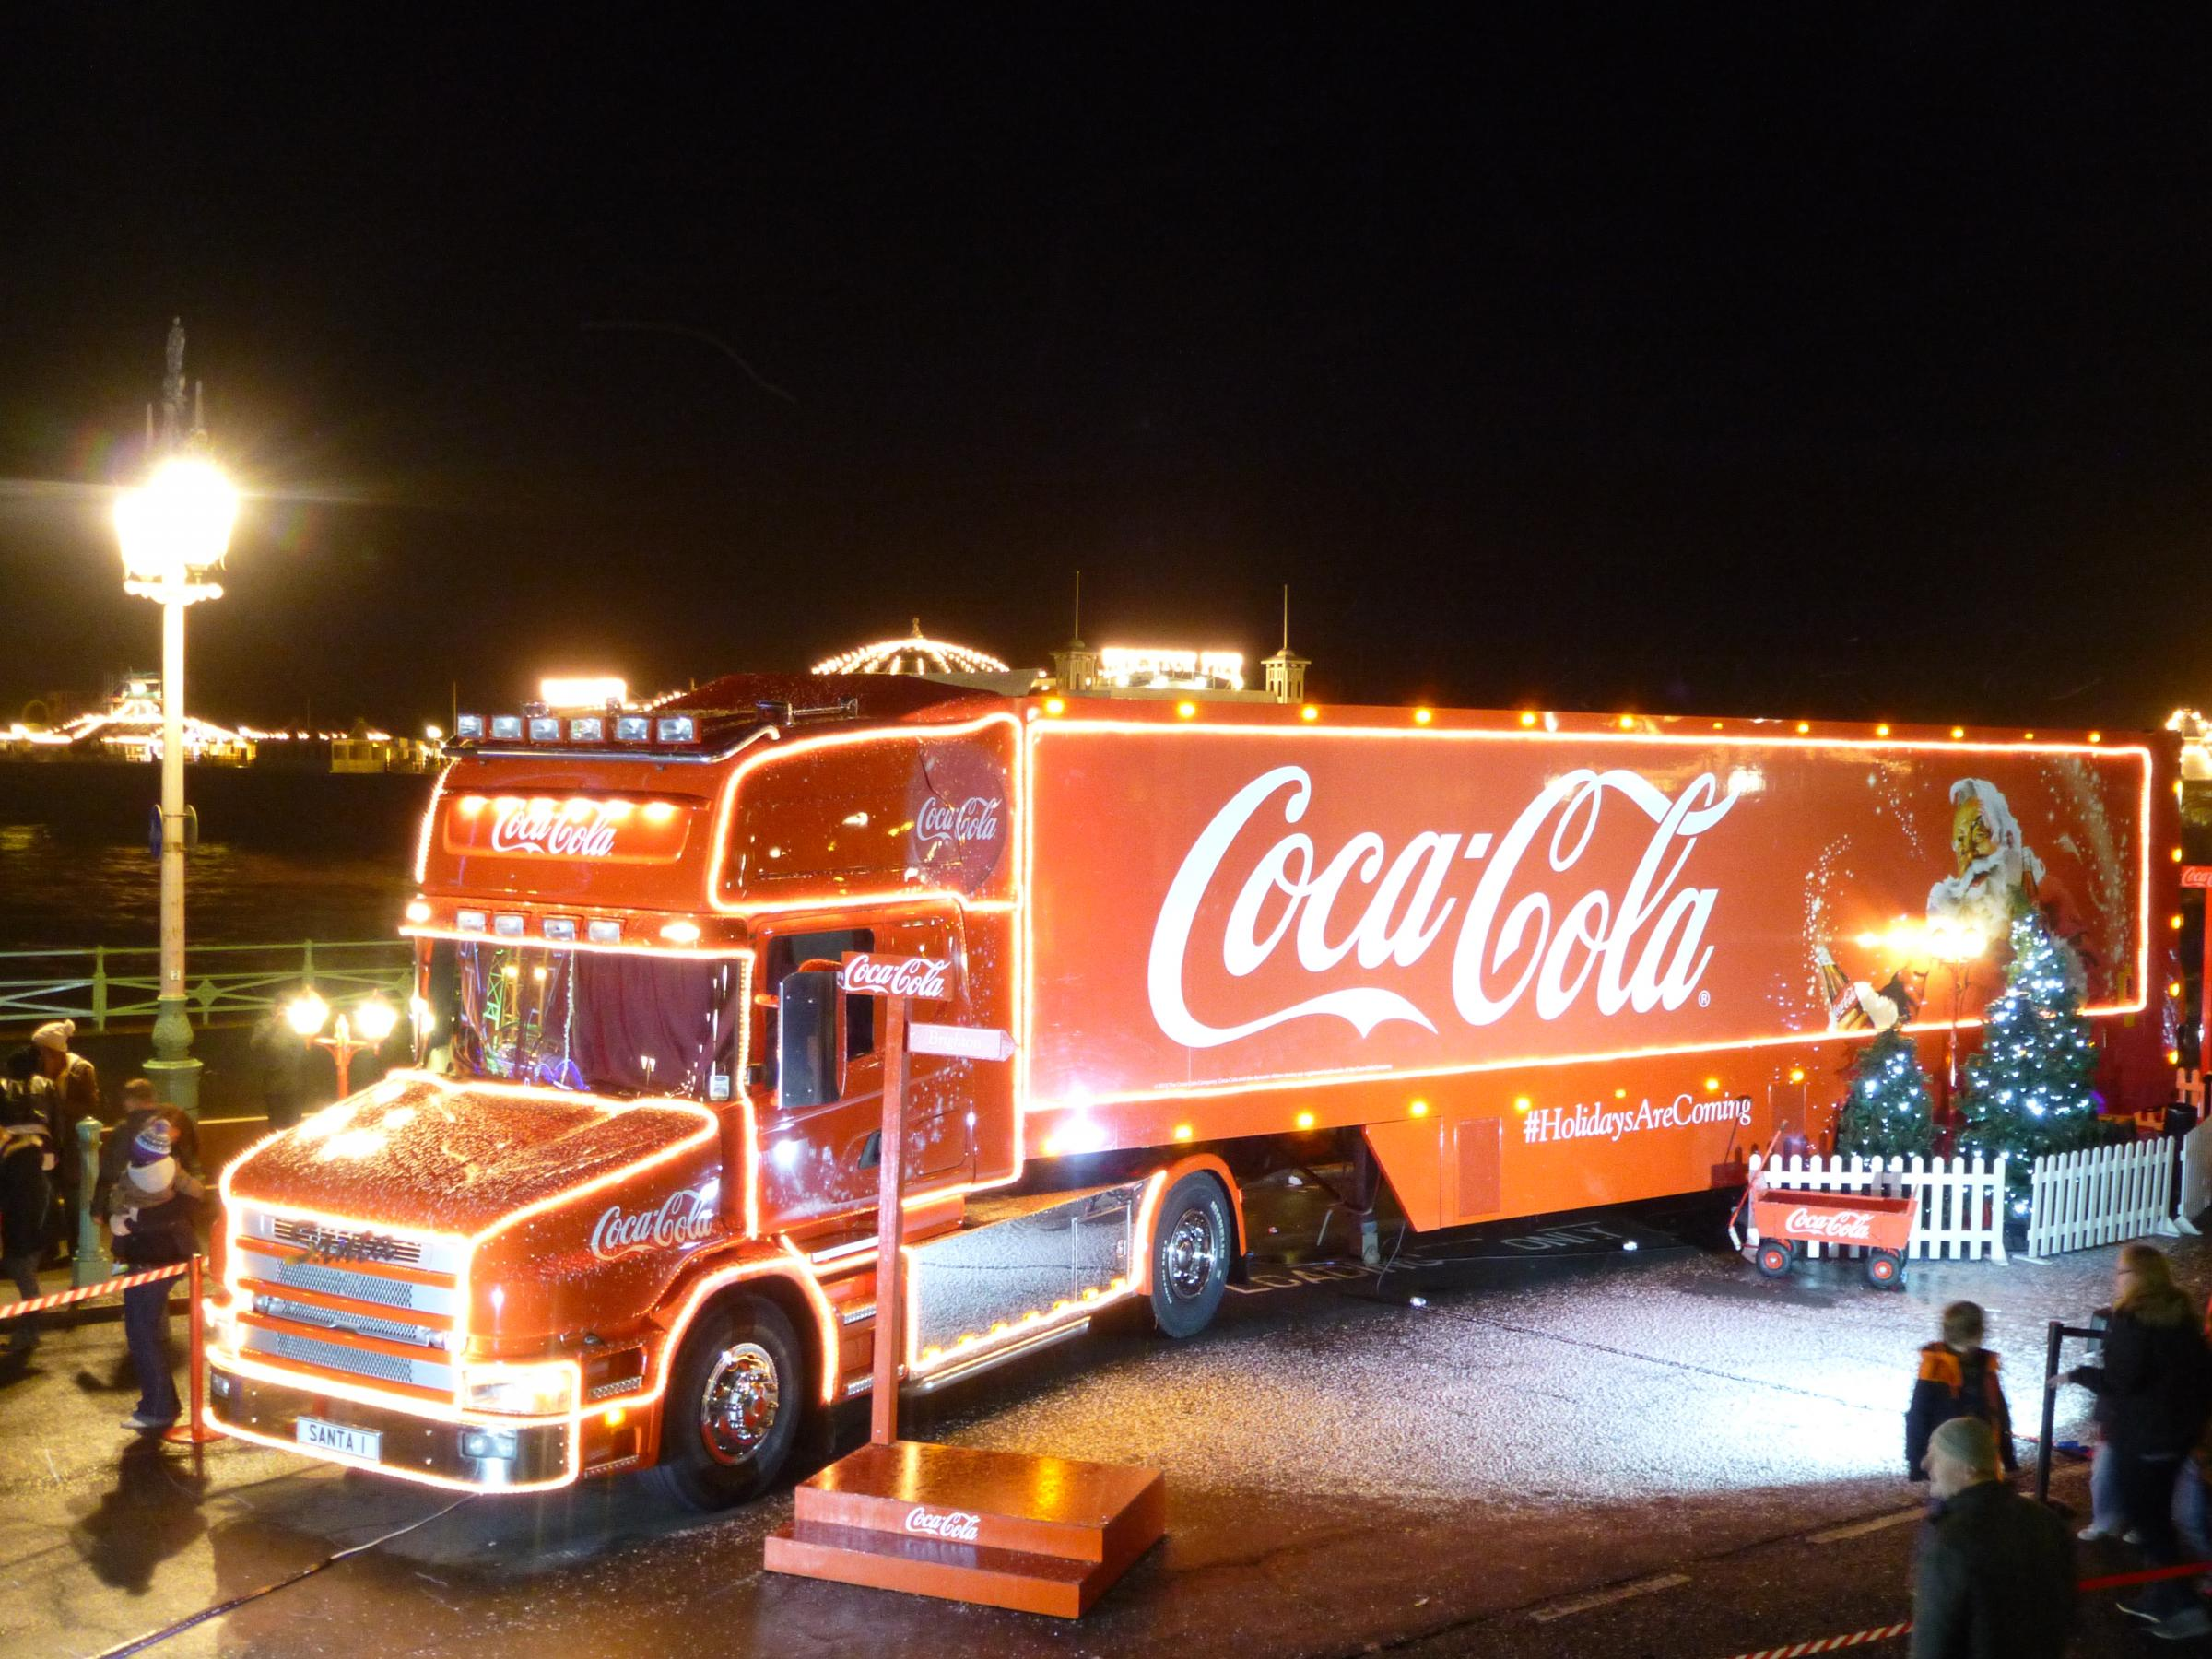 Truck event organized by Coca-Cola in Silverburn, praised by shoppers following last year's chaos